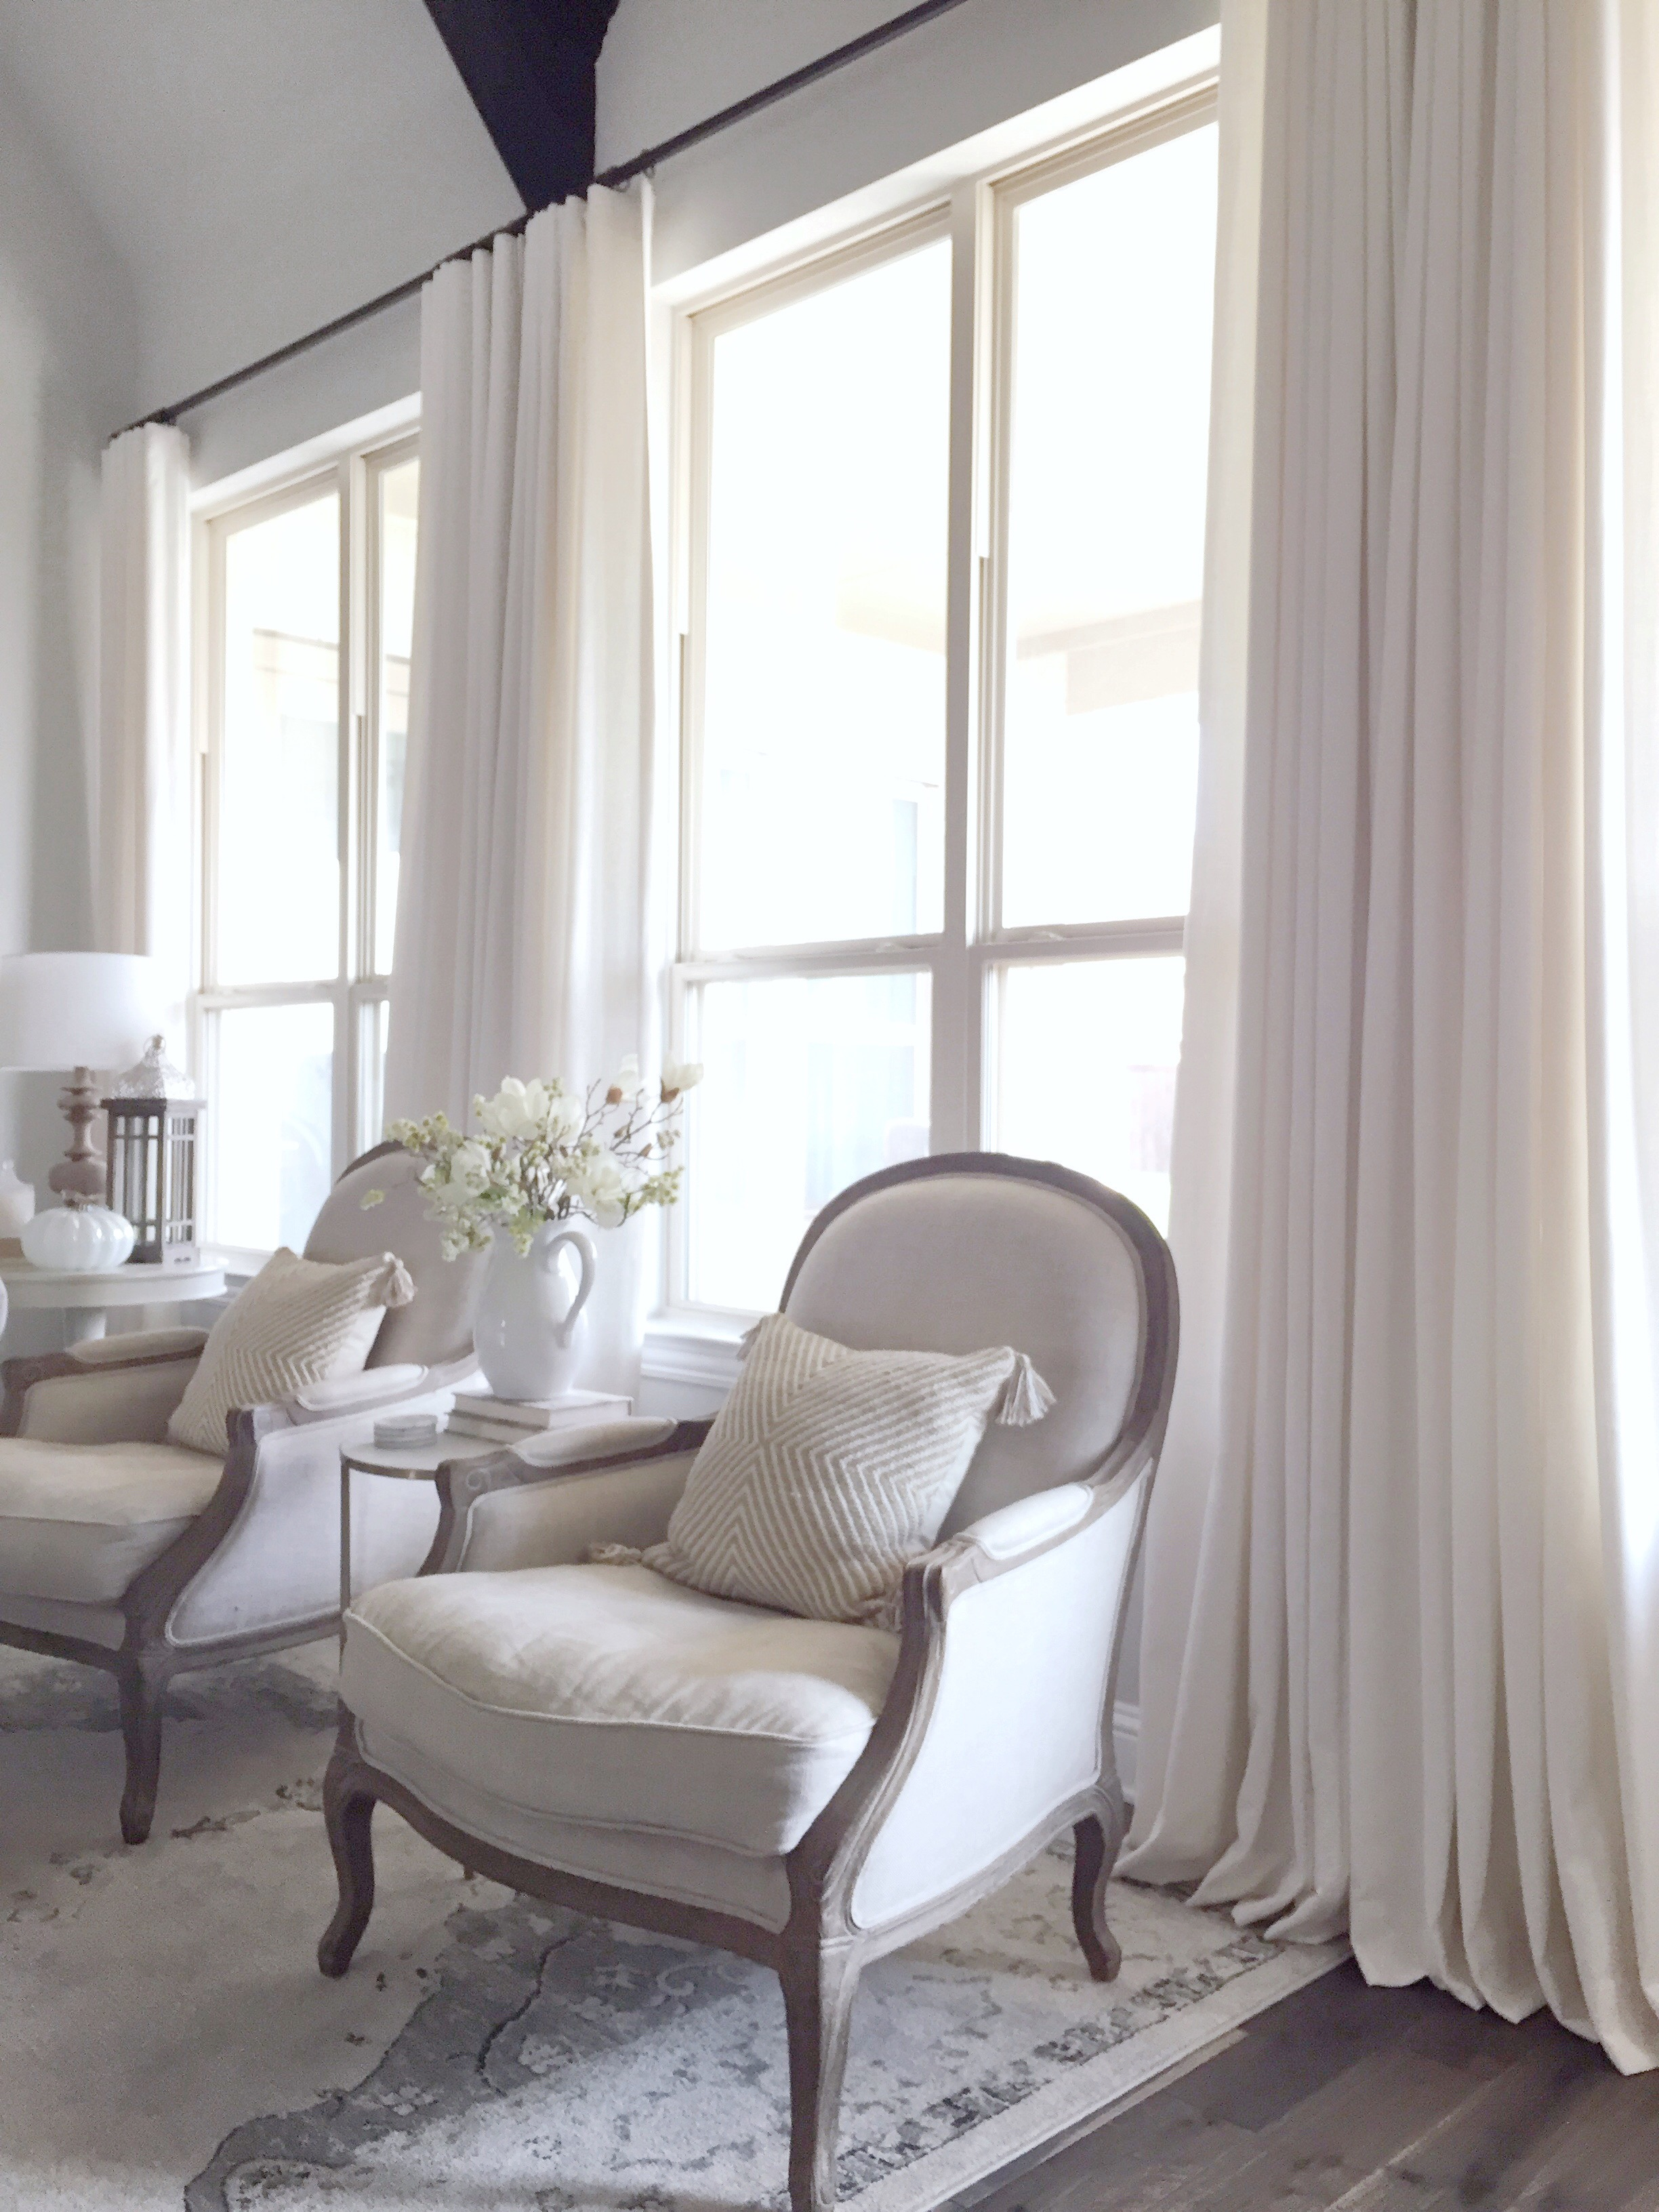 Finishing Touch: Living Room Window Treatments with Premier Curtain ...